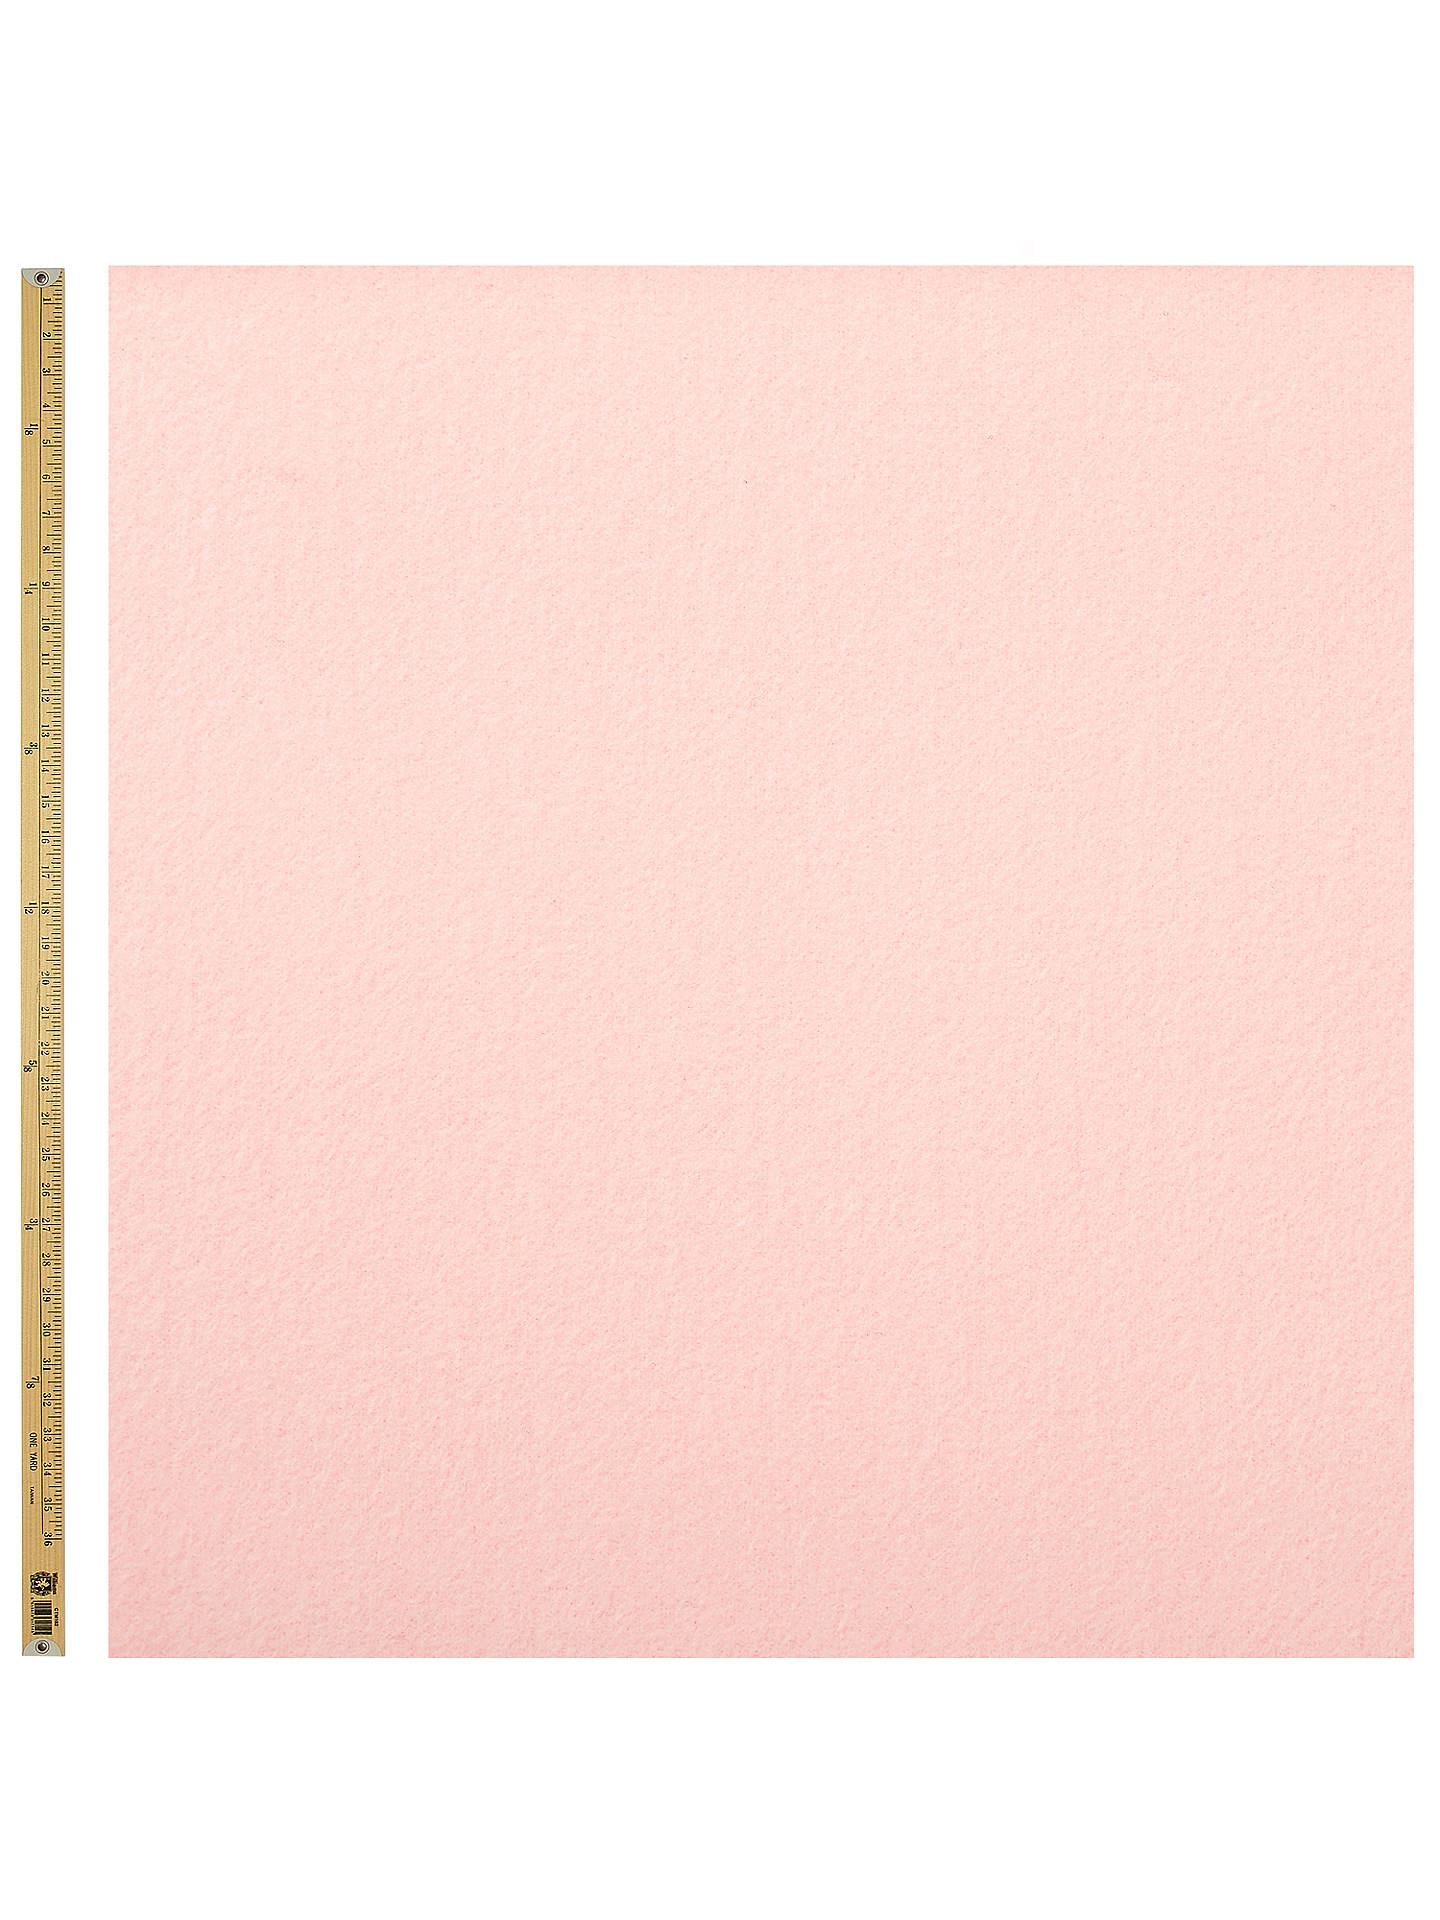 Buy Coat Material Fabric, Pale Pink Online at johnlewis.com